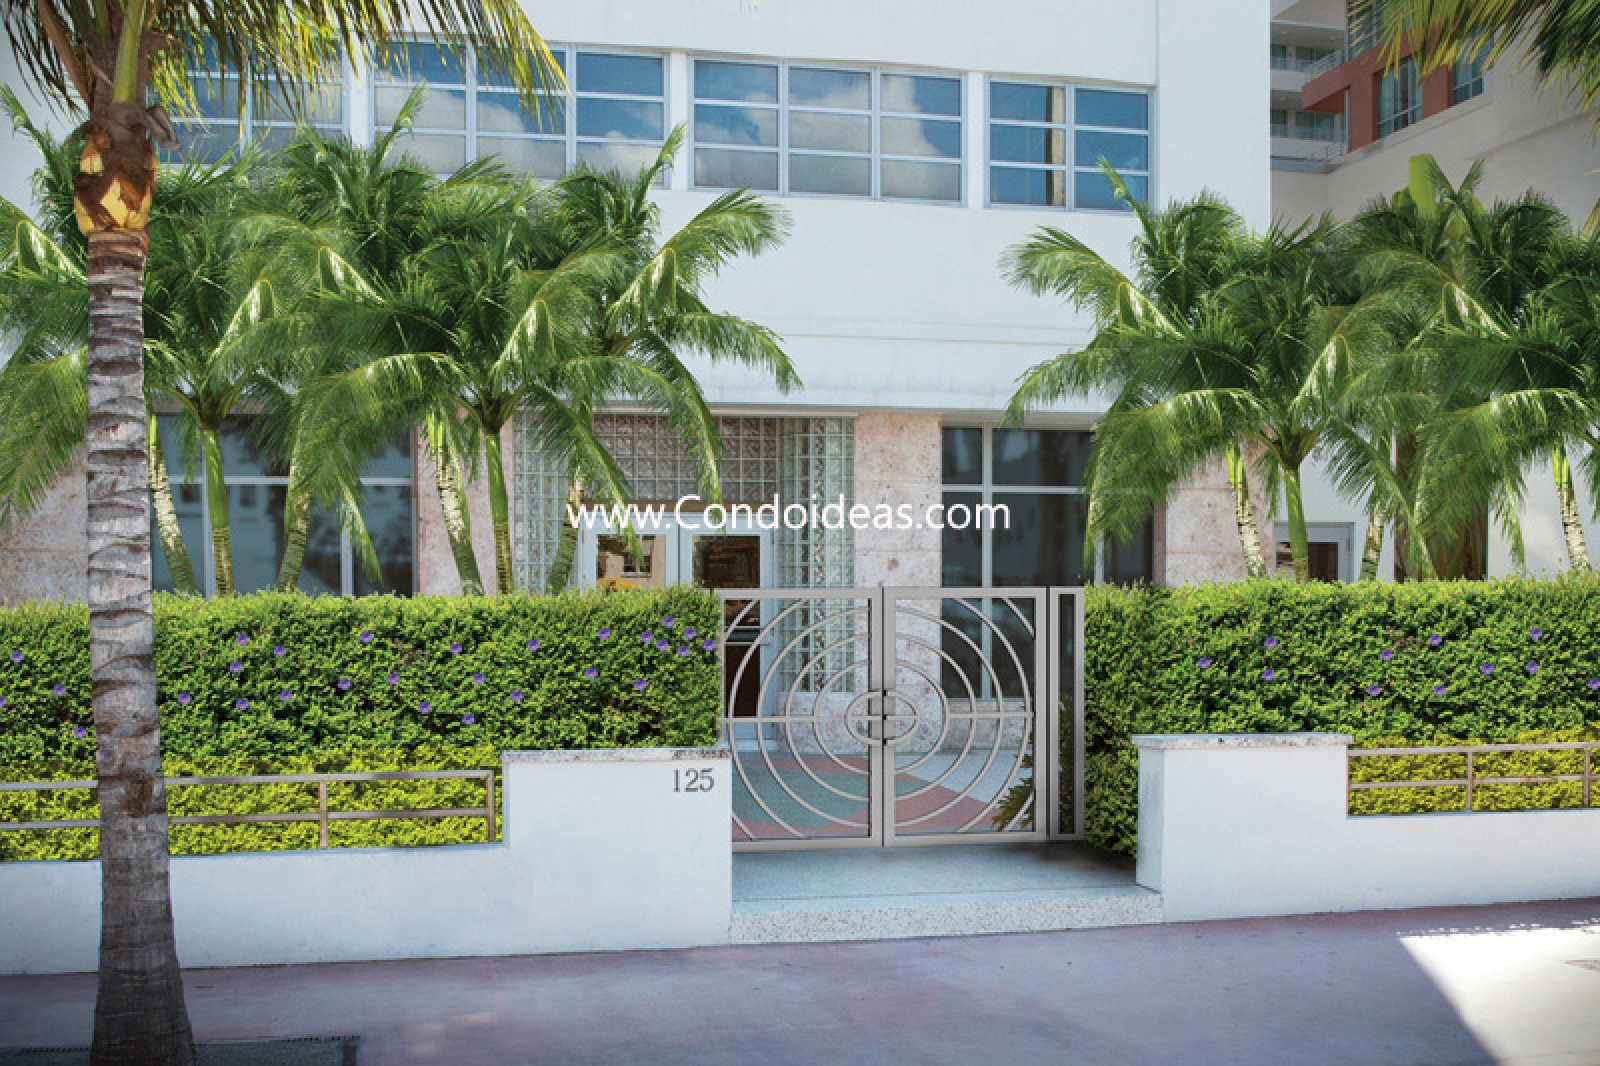 South Beach Real Estate Ocean House Condo